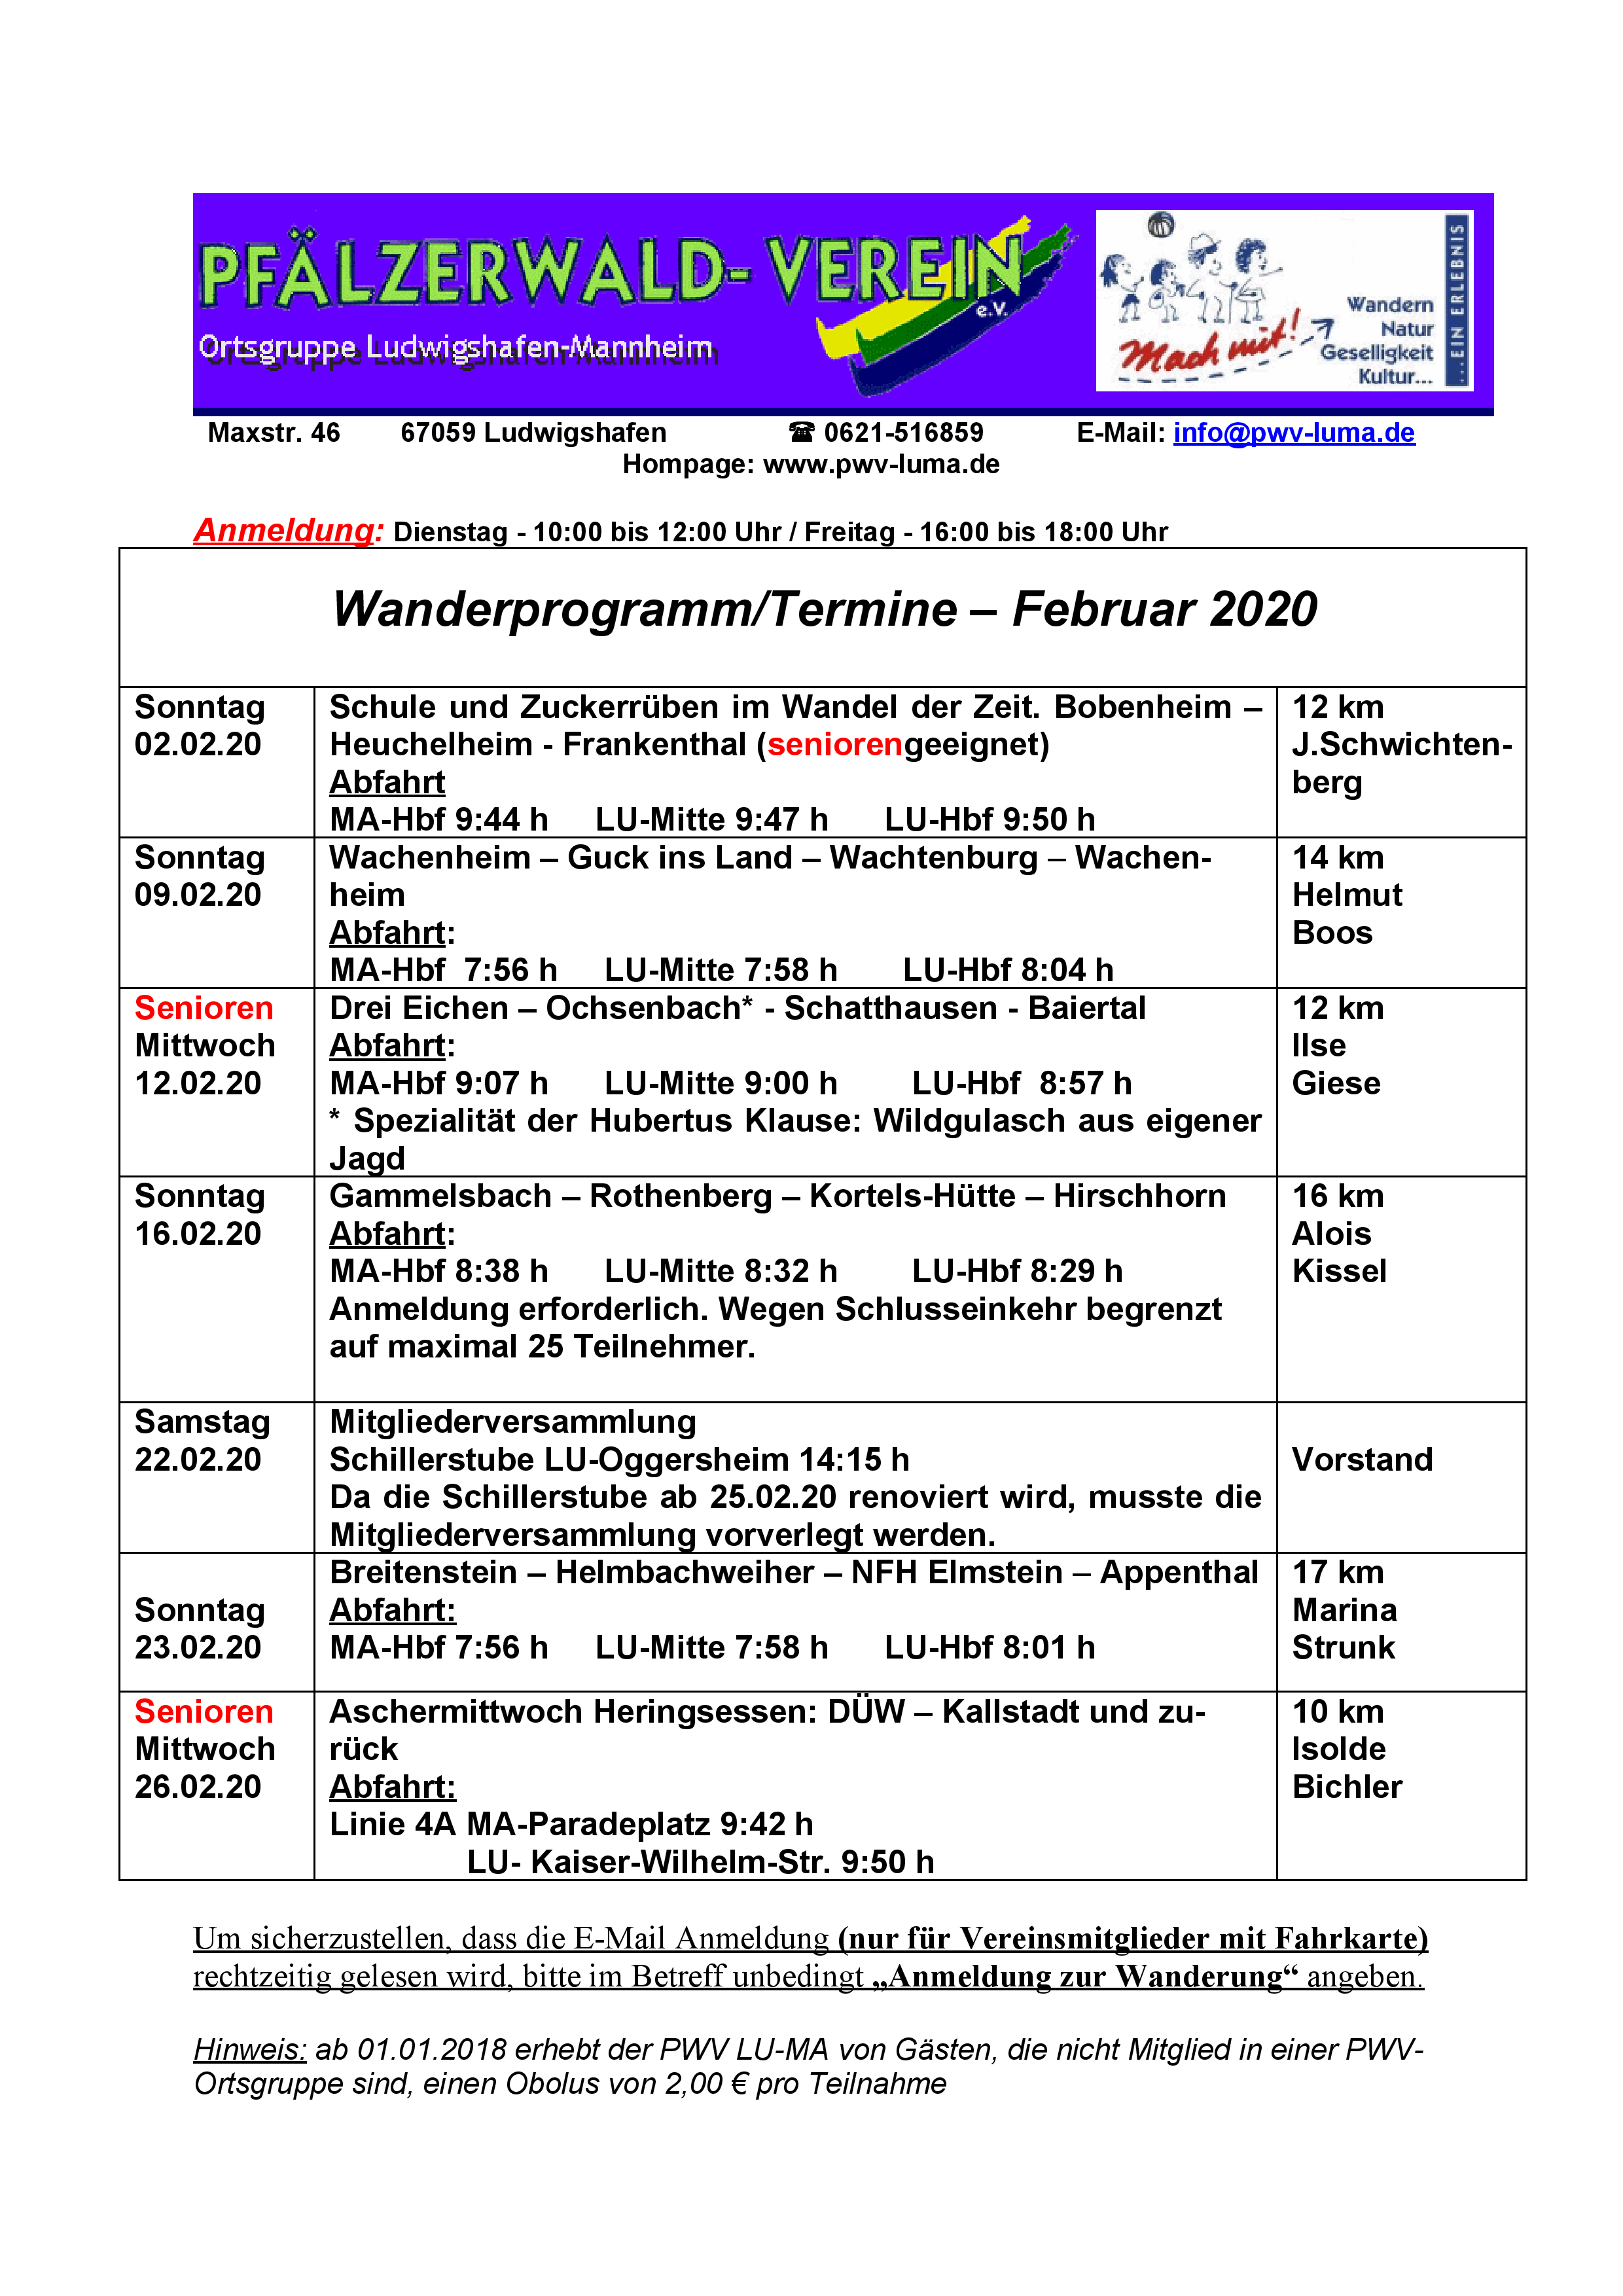 Wanderinformation Februar 2020 (1)